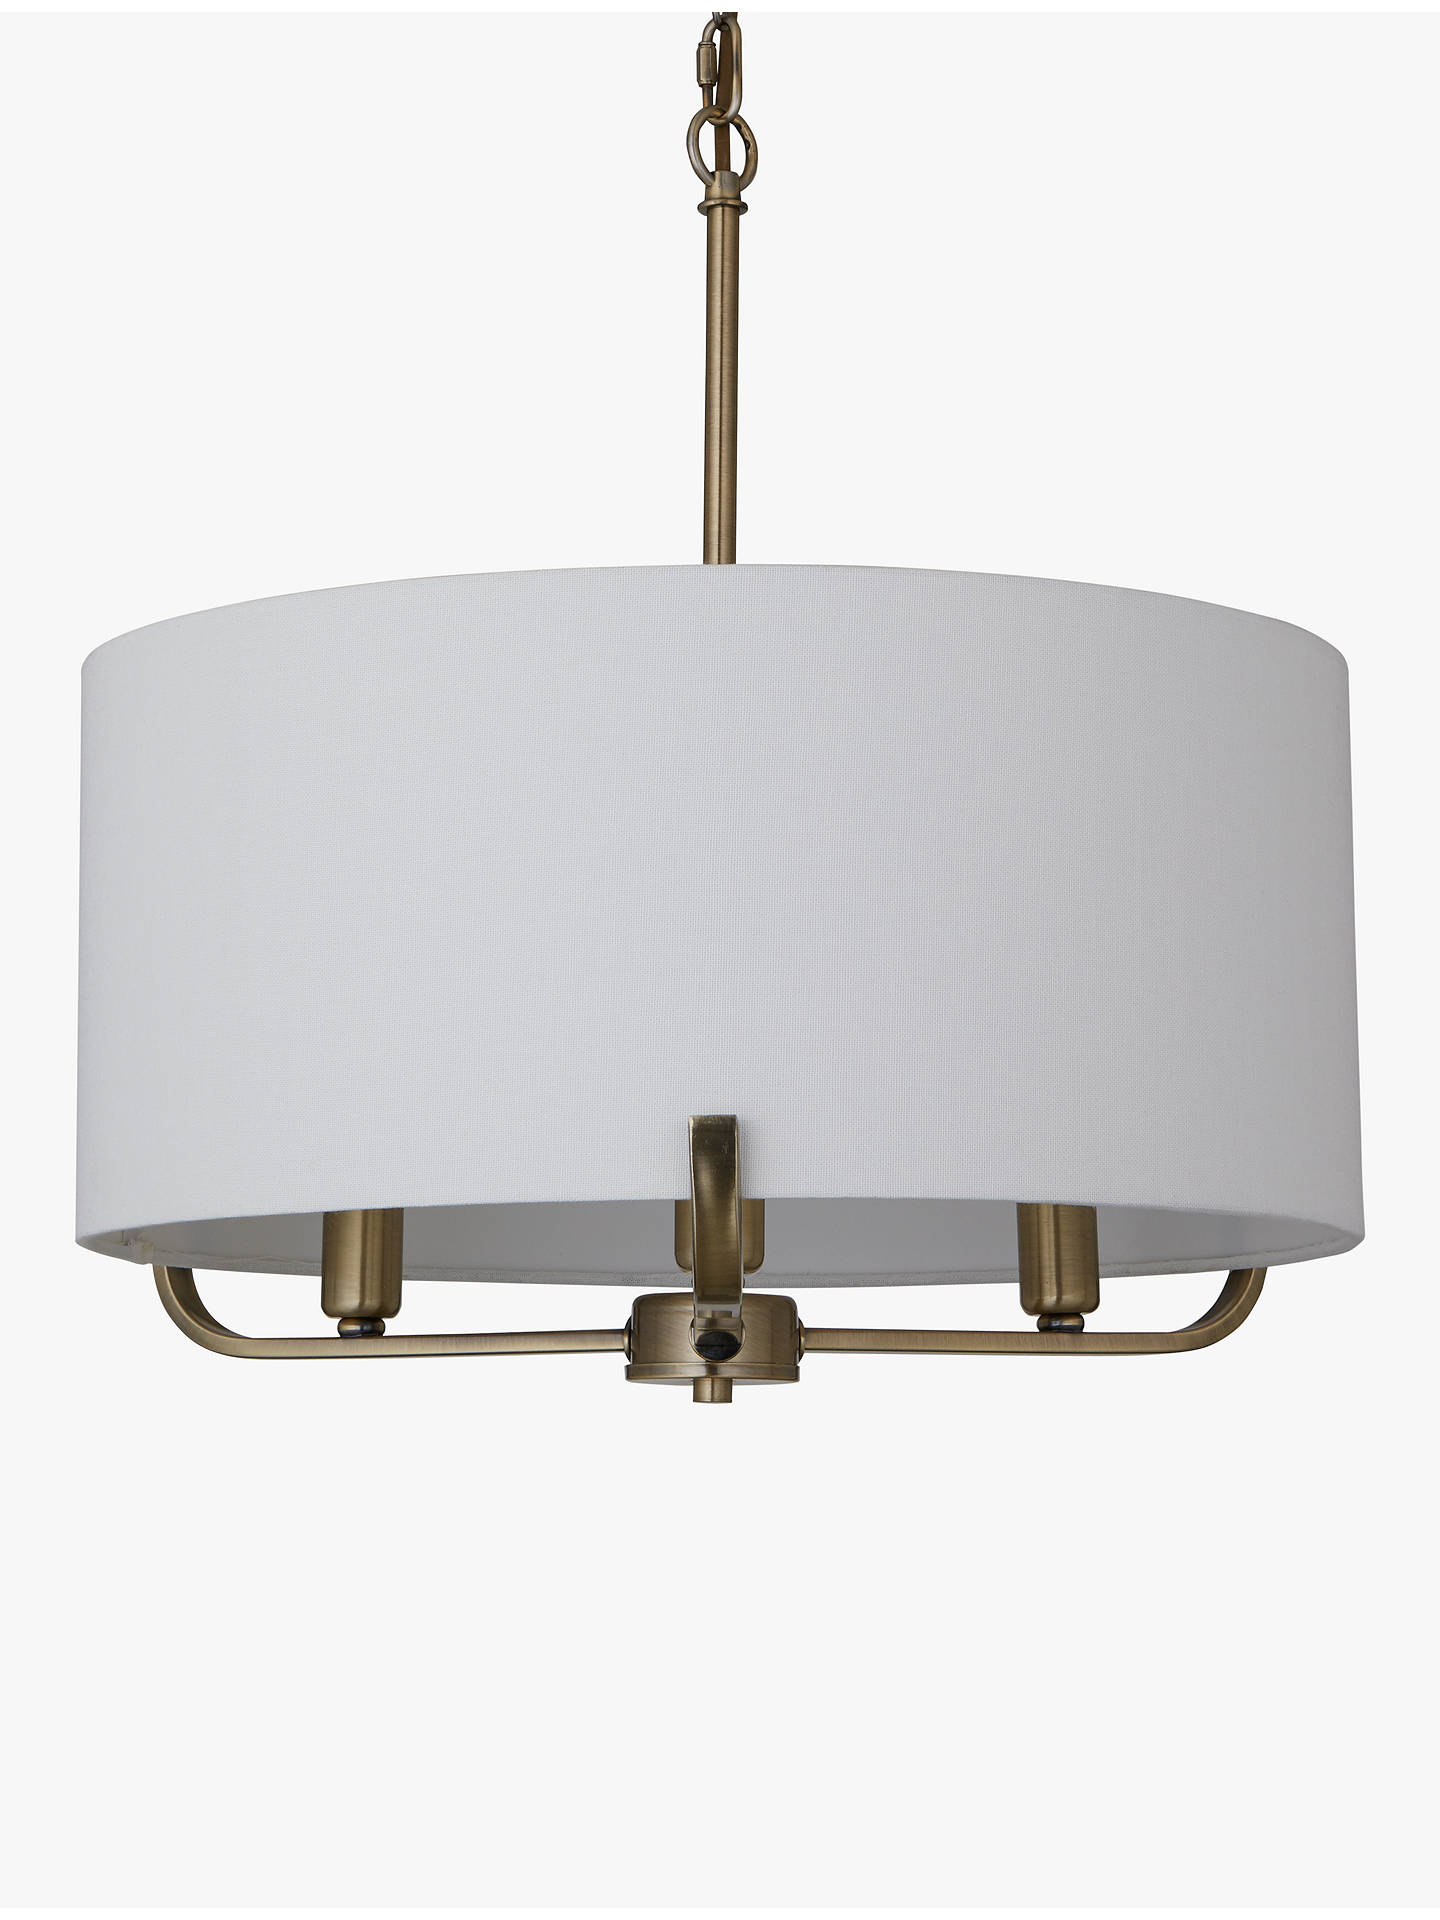 BuyJohn Lewis & Partners Jamieson Pendant Ceiling Light, Satin Brass Online at johnlewis.com